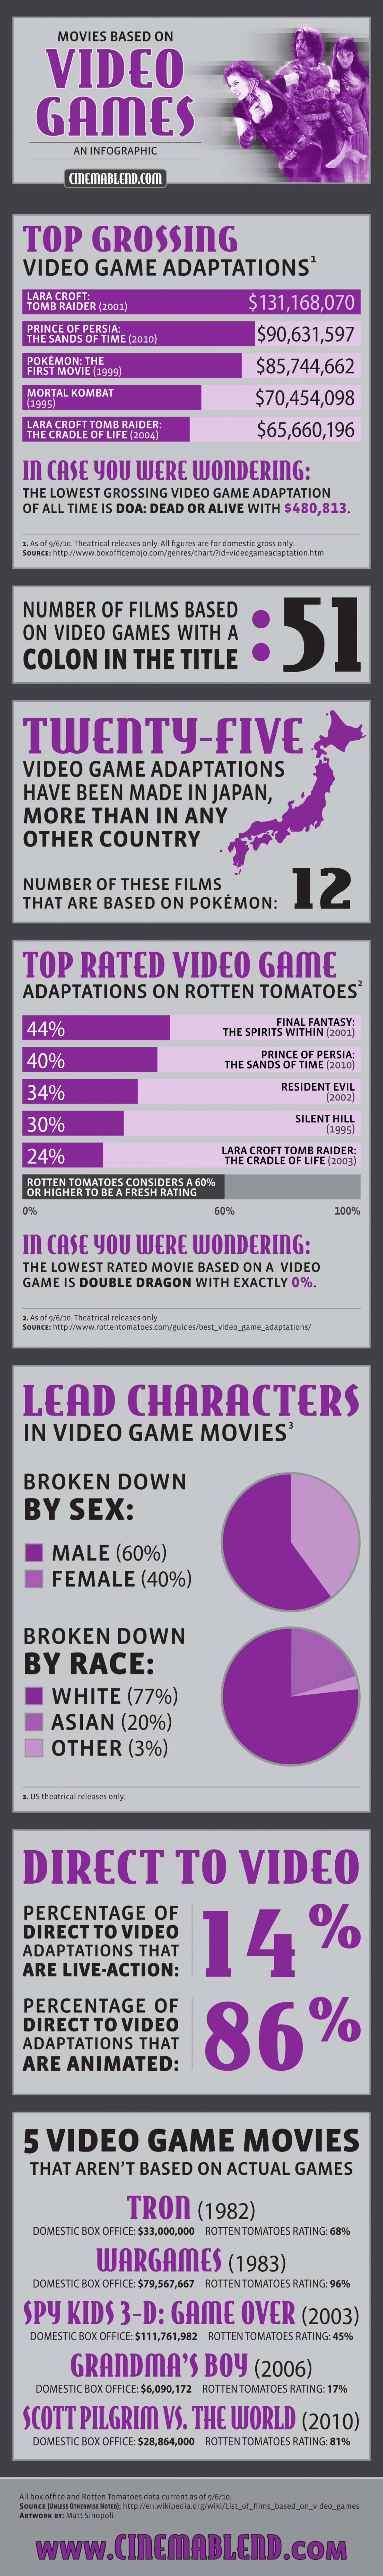 16. Movies Based on Video Games